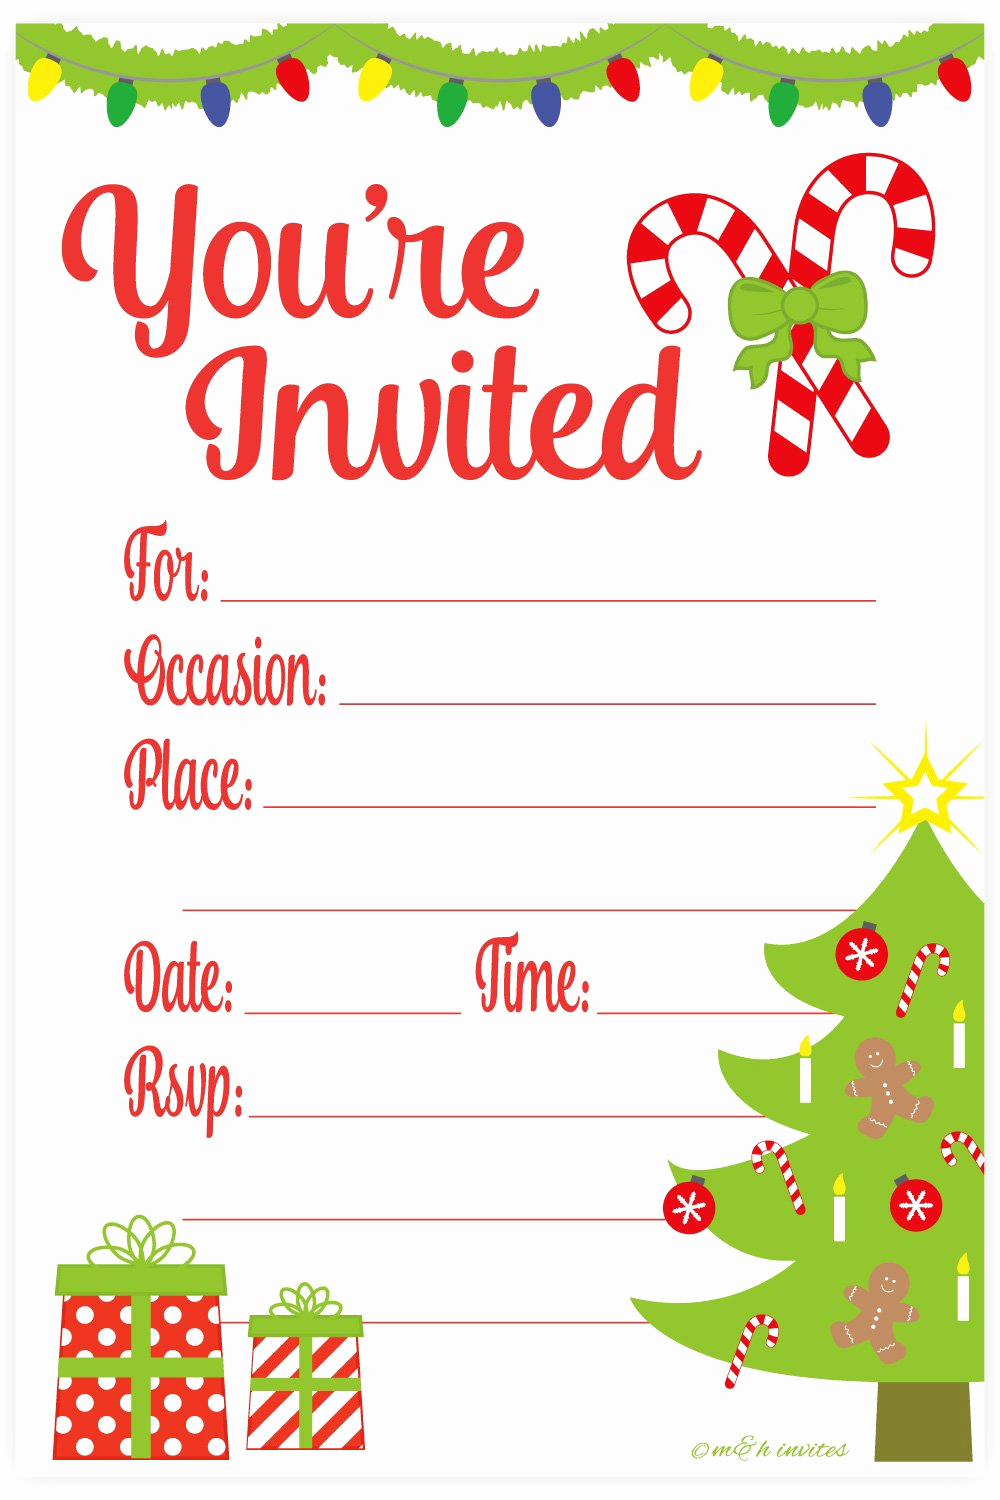 Christmas Party Invitation Idea New Amazon Snowflake Classic Christmas Invitations Fill